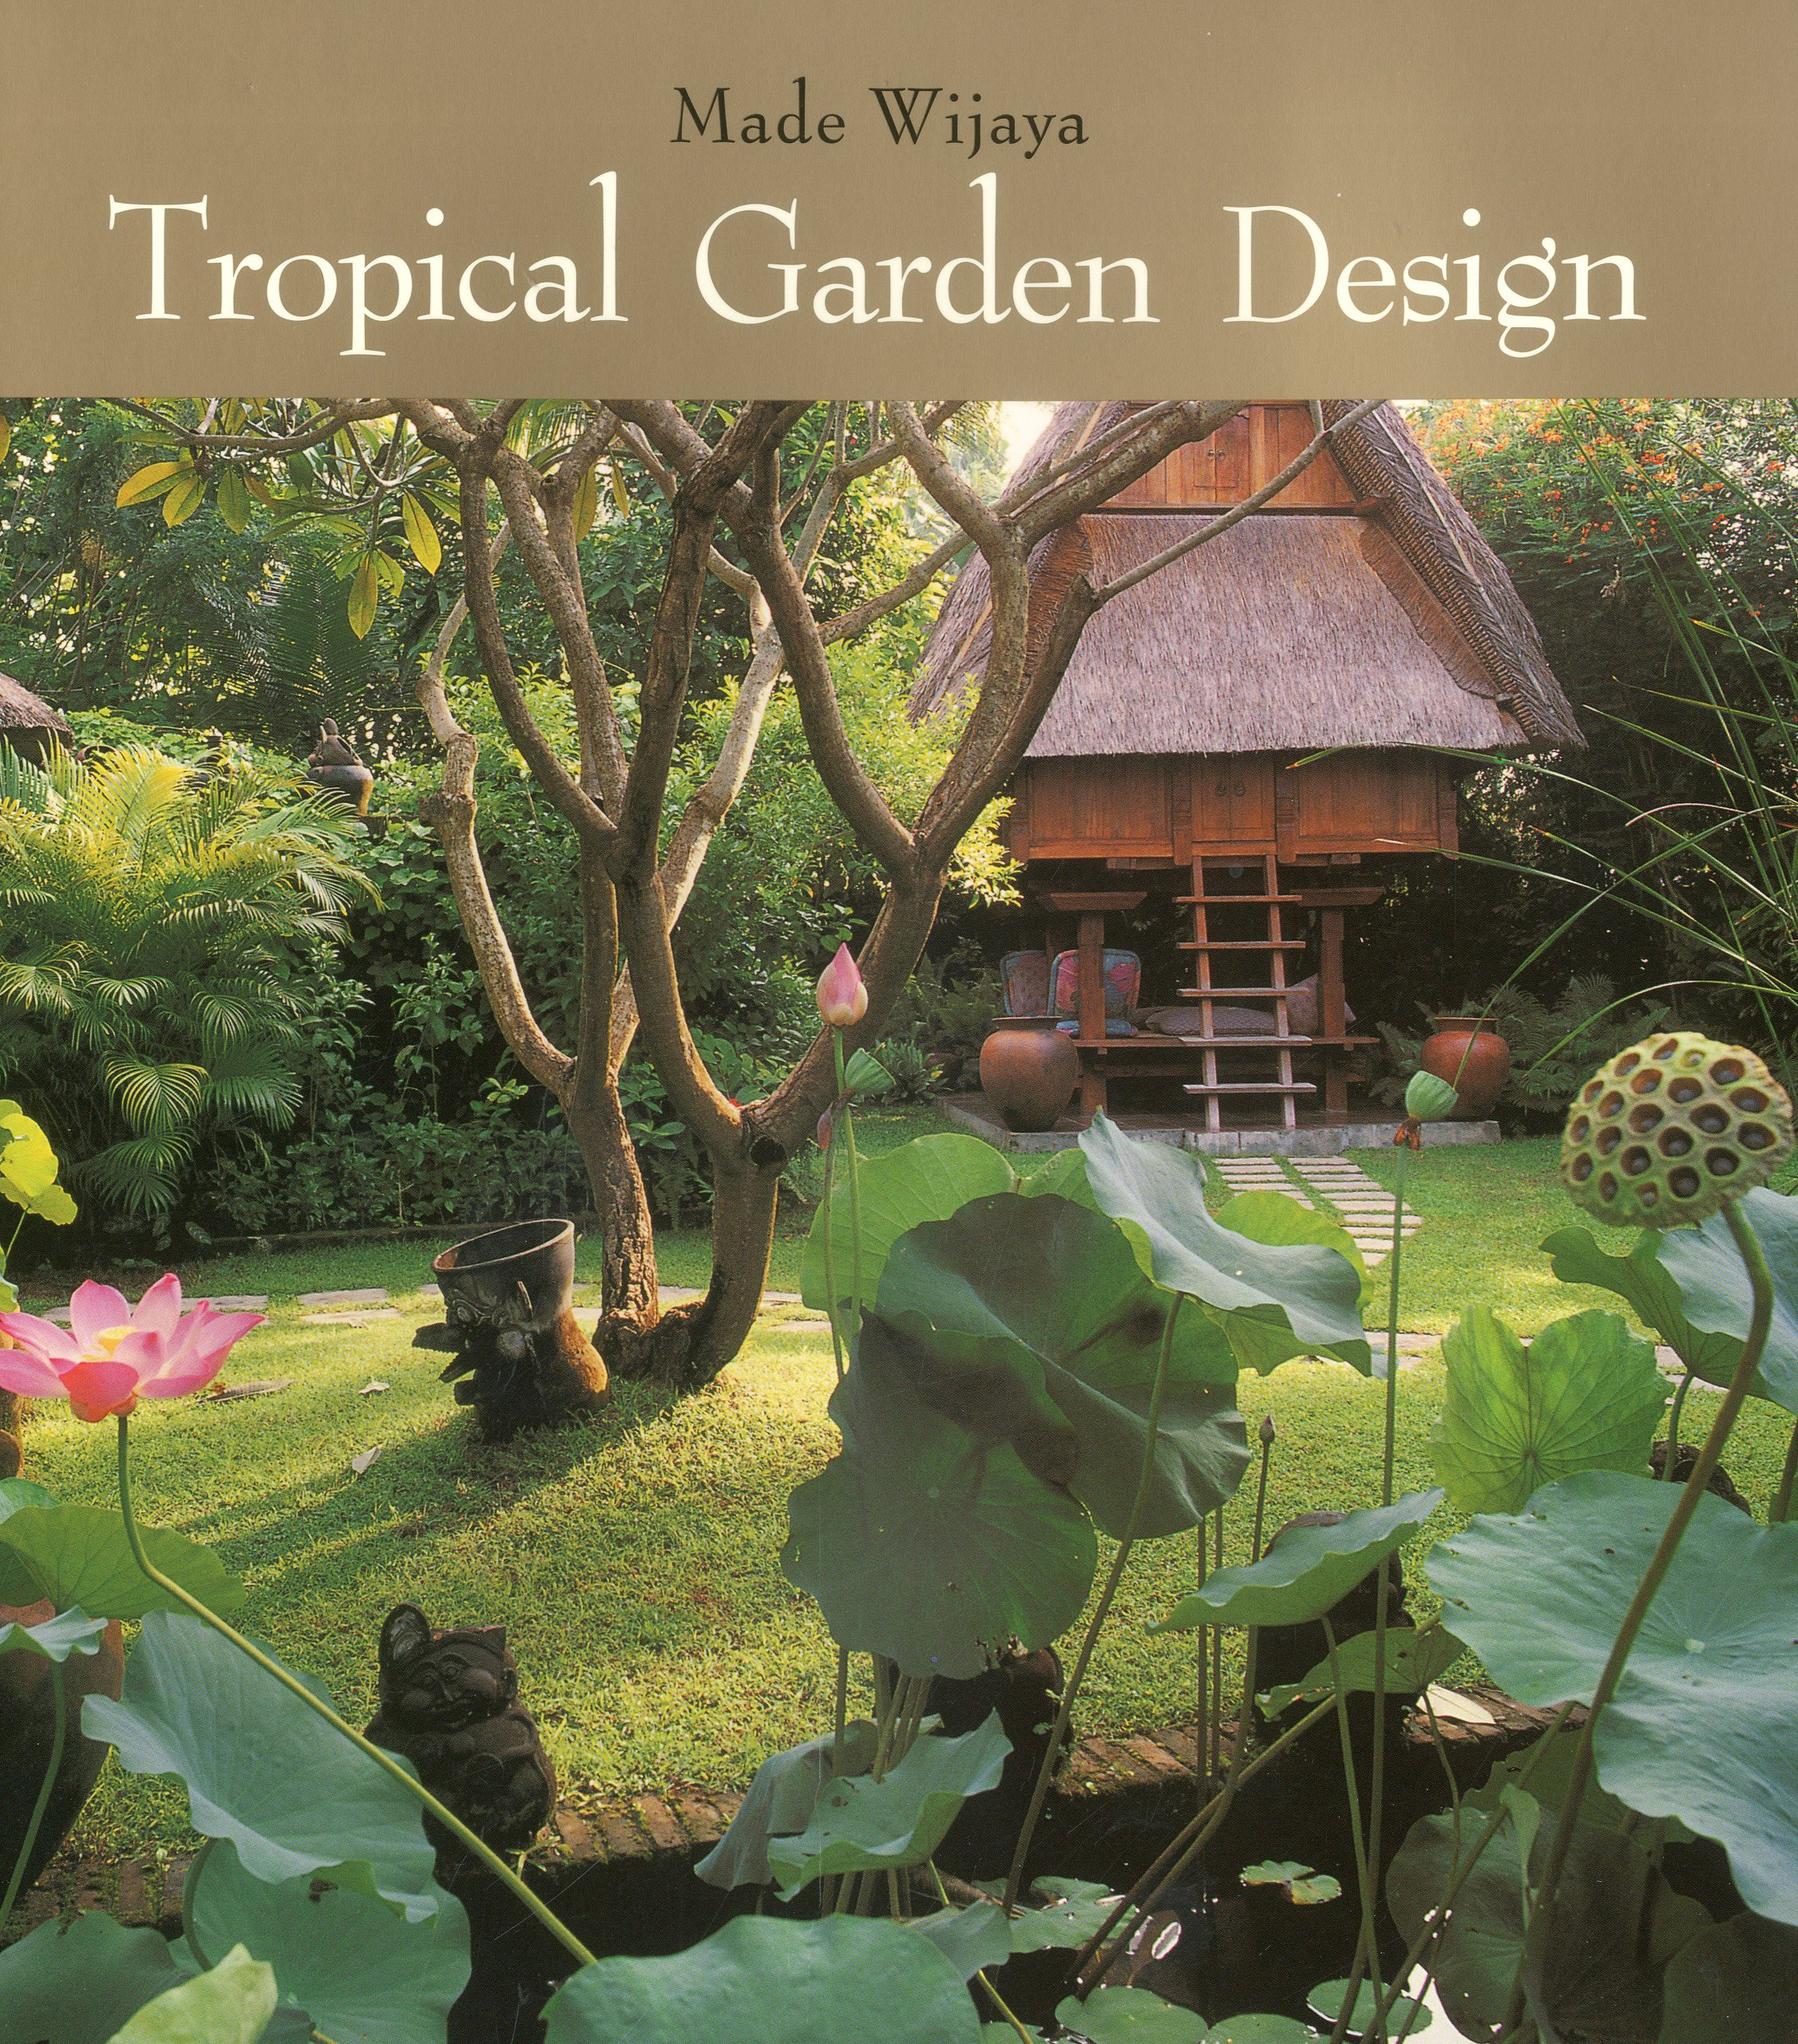 tropical garden design made wijaya 9789814068918 amazoncom books - Garden Design Tropical